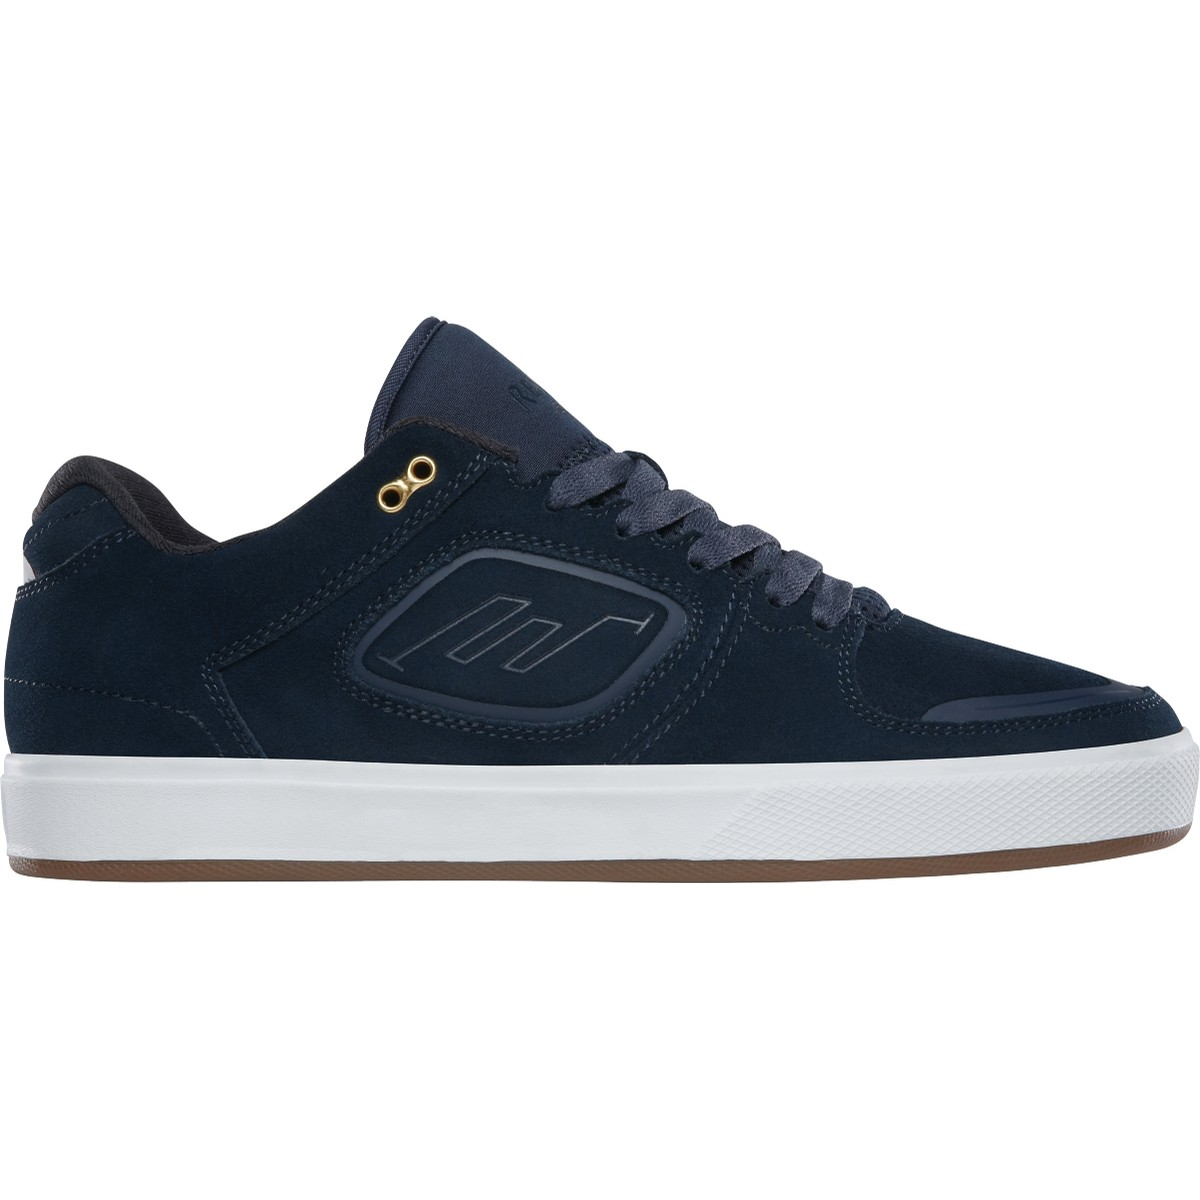 Reynolds G6 (Navy/White/Gum)